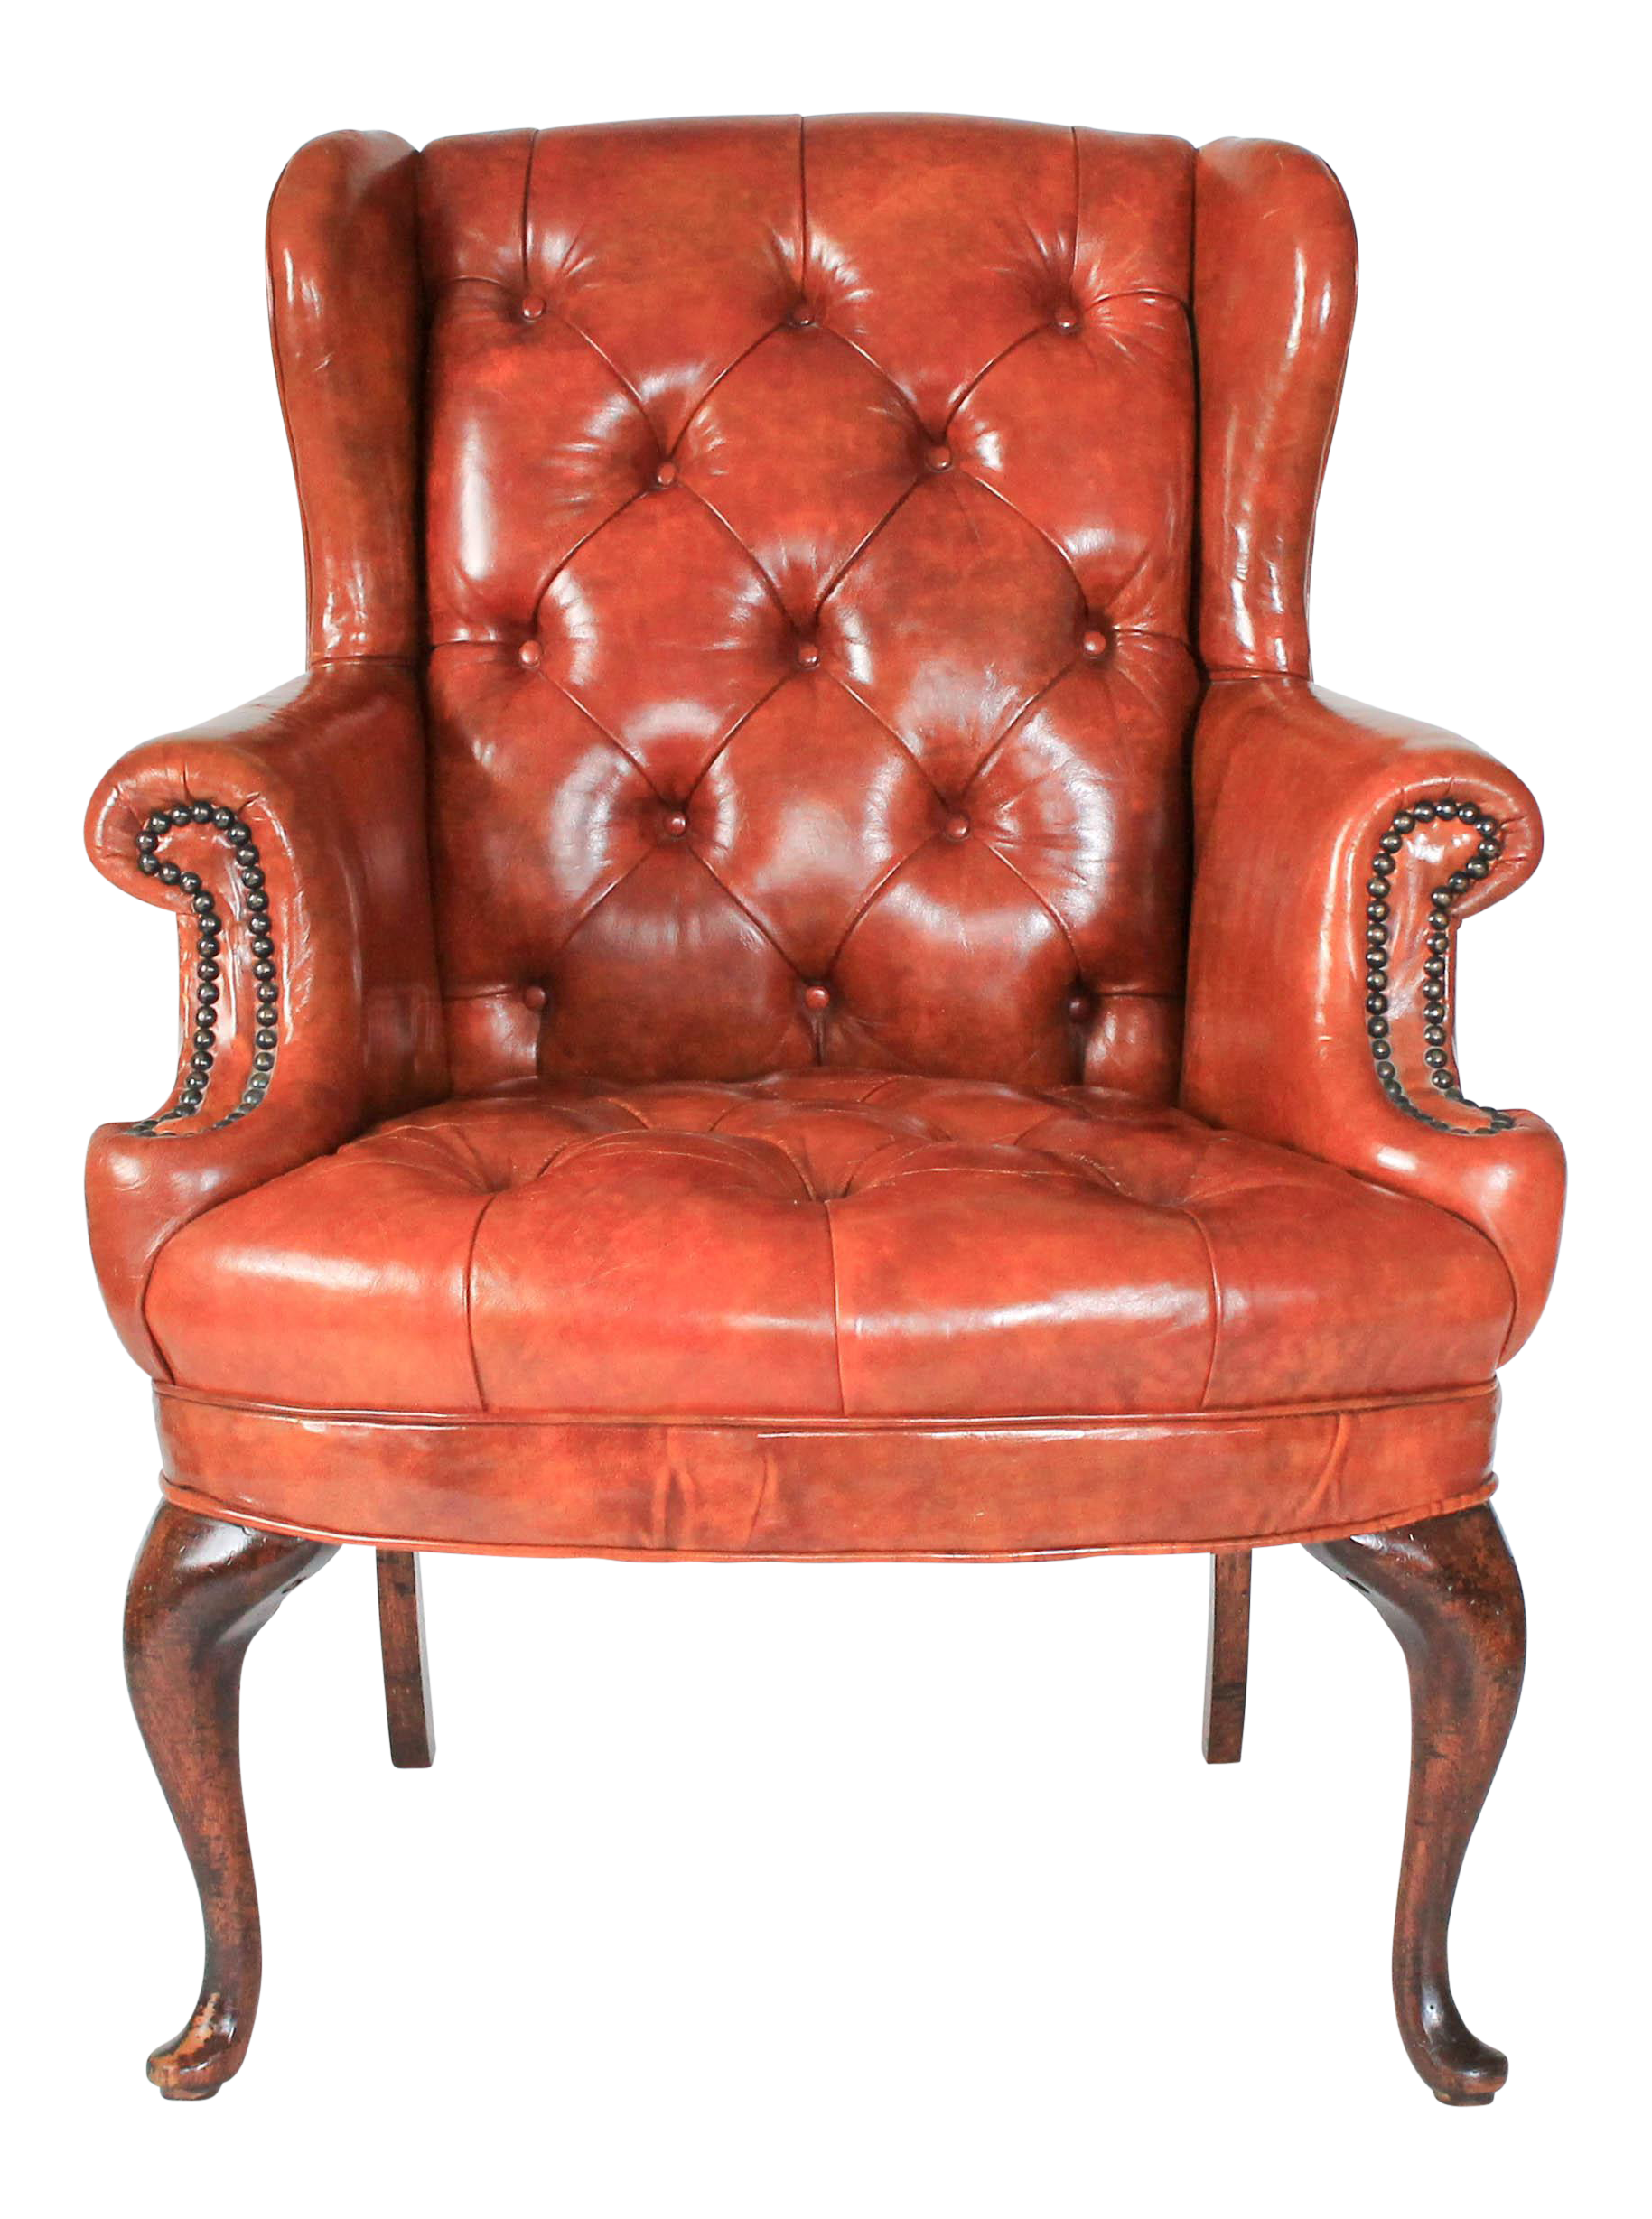 Petite Leather Tufted Wingback Chair On Chairish.com